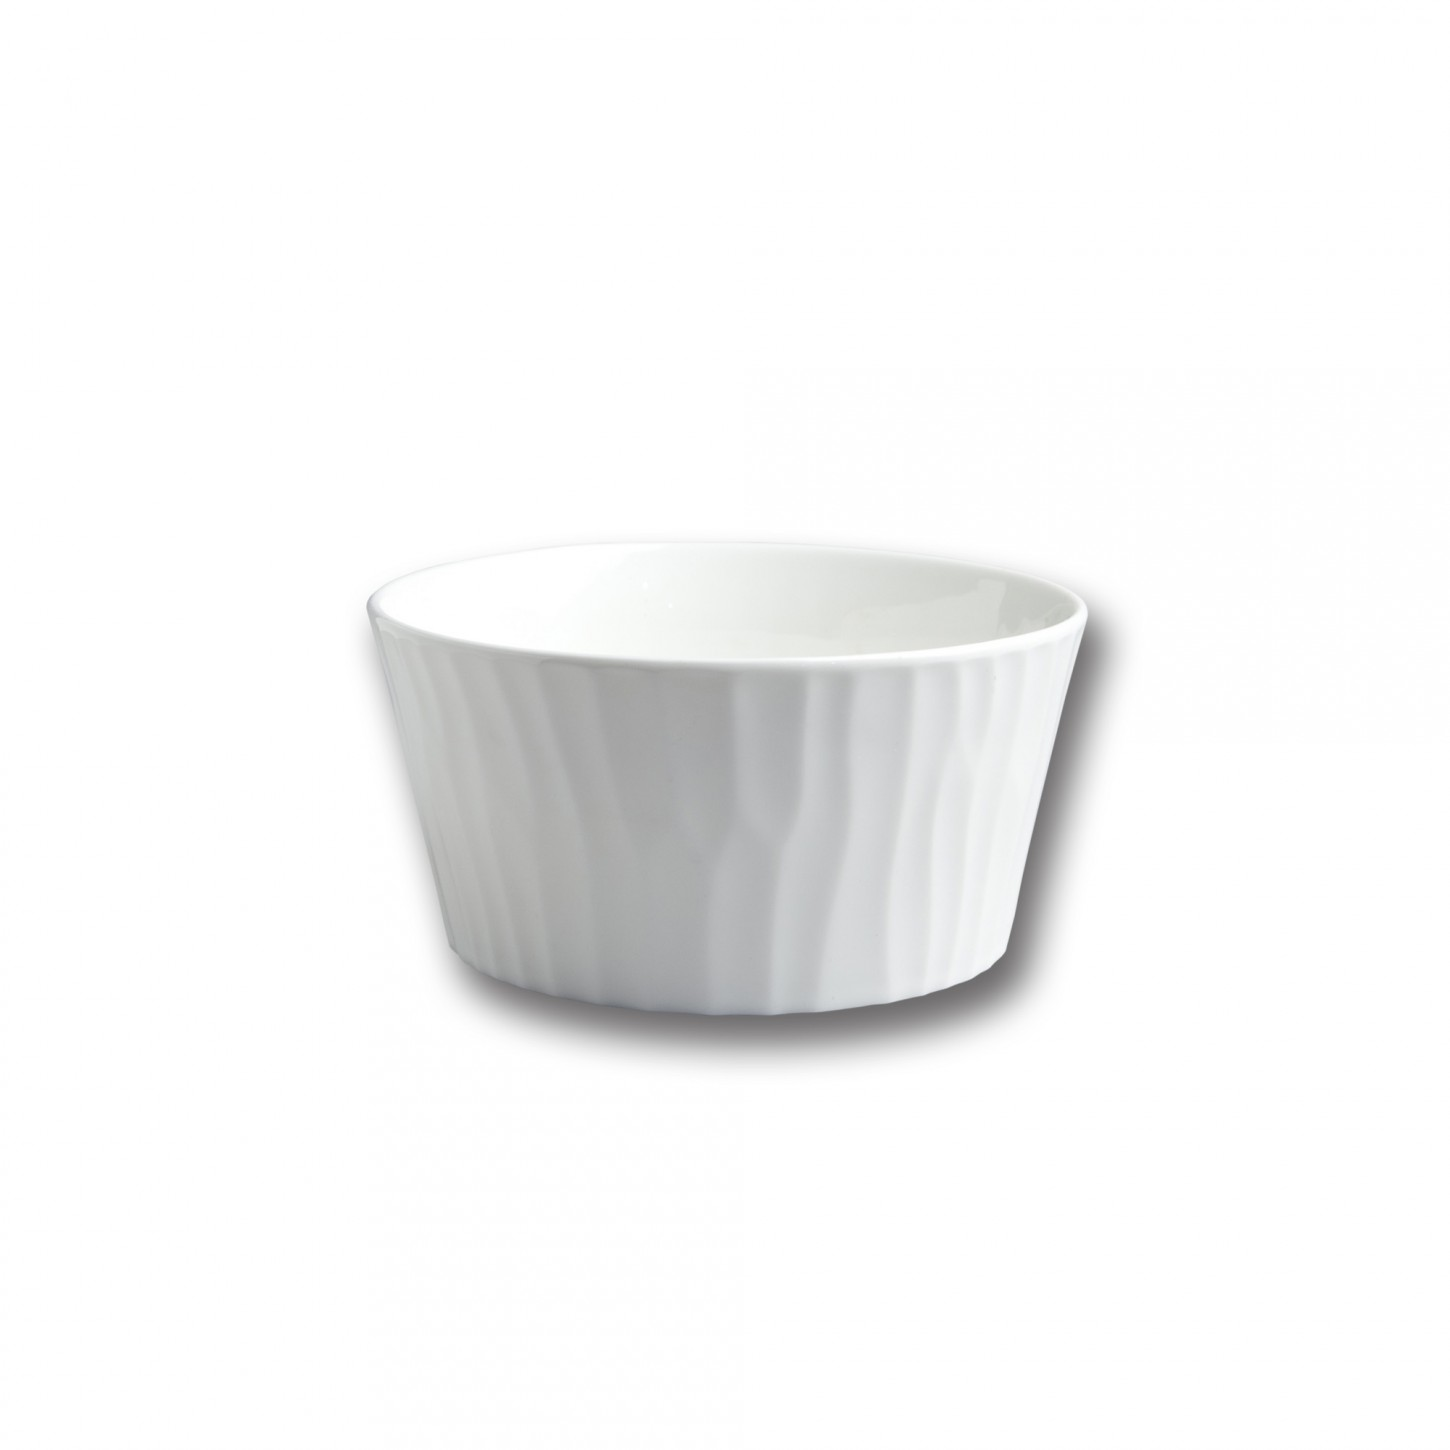 "3"" Wood Grain Ramekin (3 oz)"